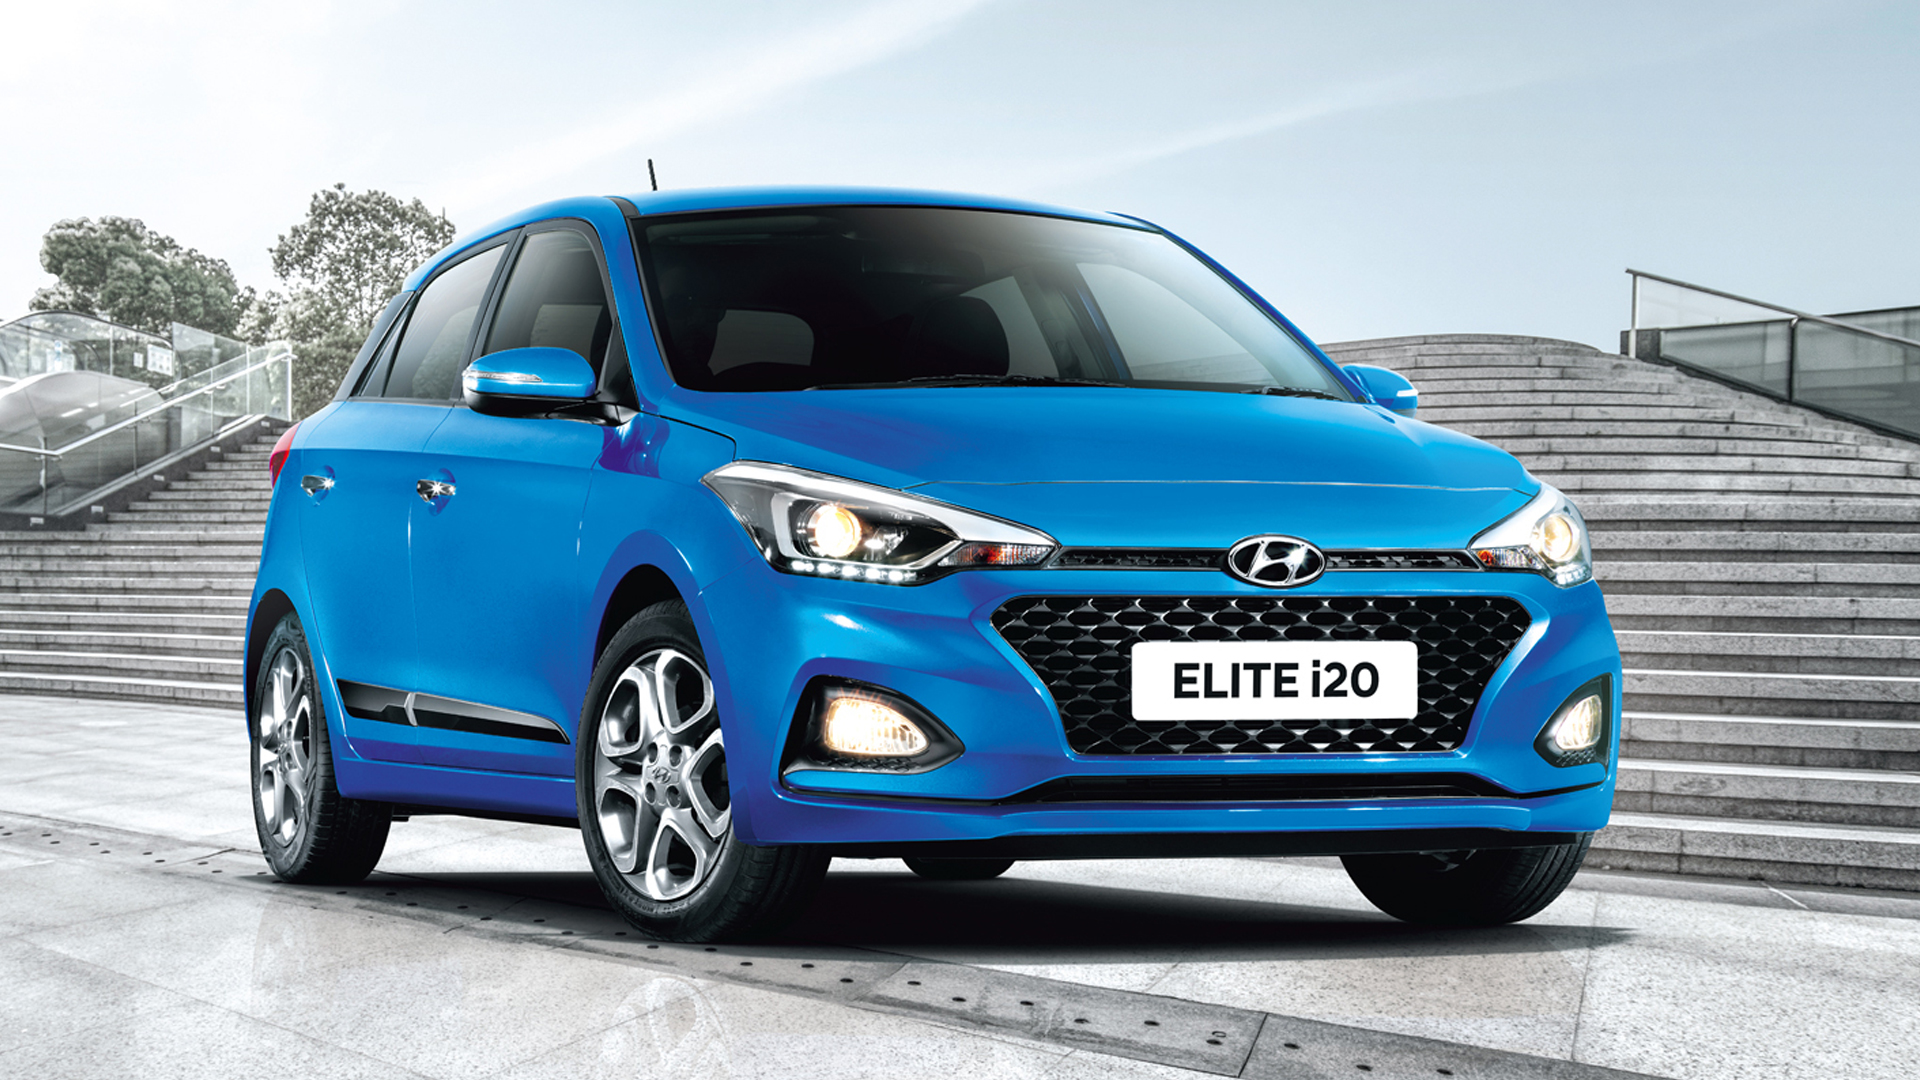 Hyundai Elite I20 2018 Price Mileage Reviews Specification